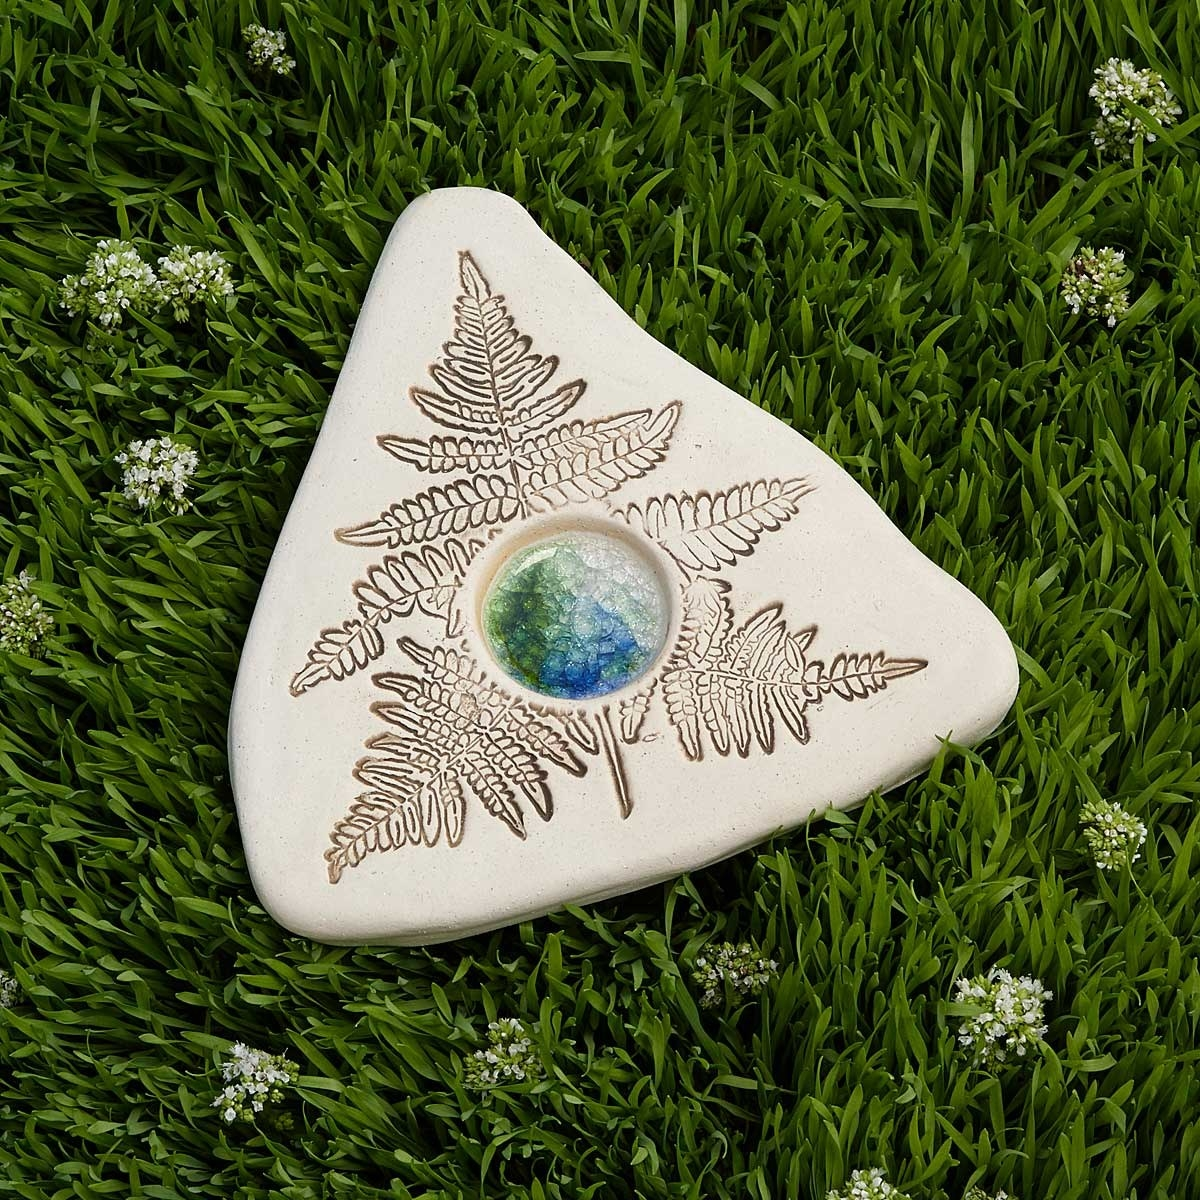 triangle shape stone with leaf prints on it and a water puddle in the middle